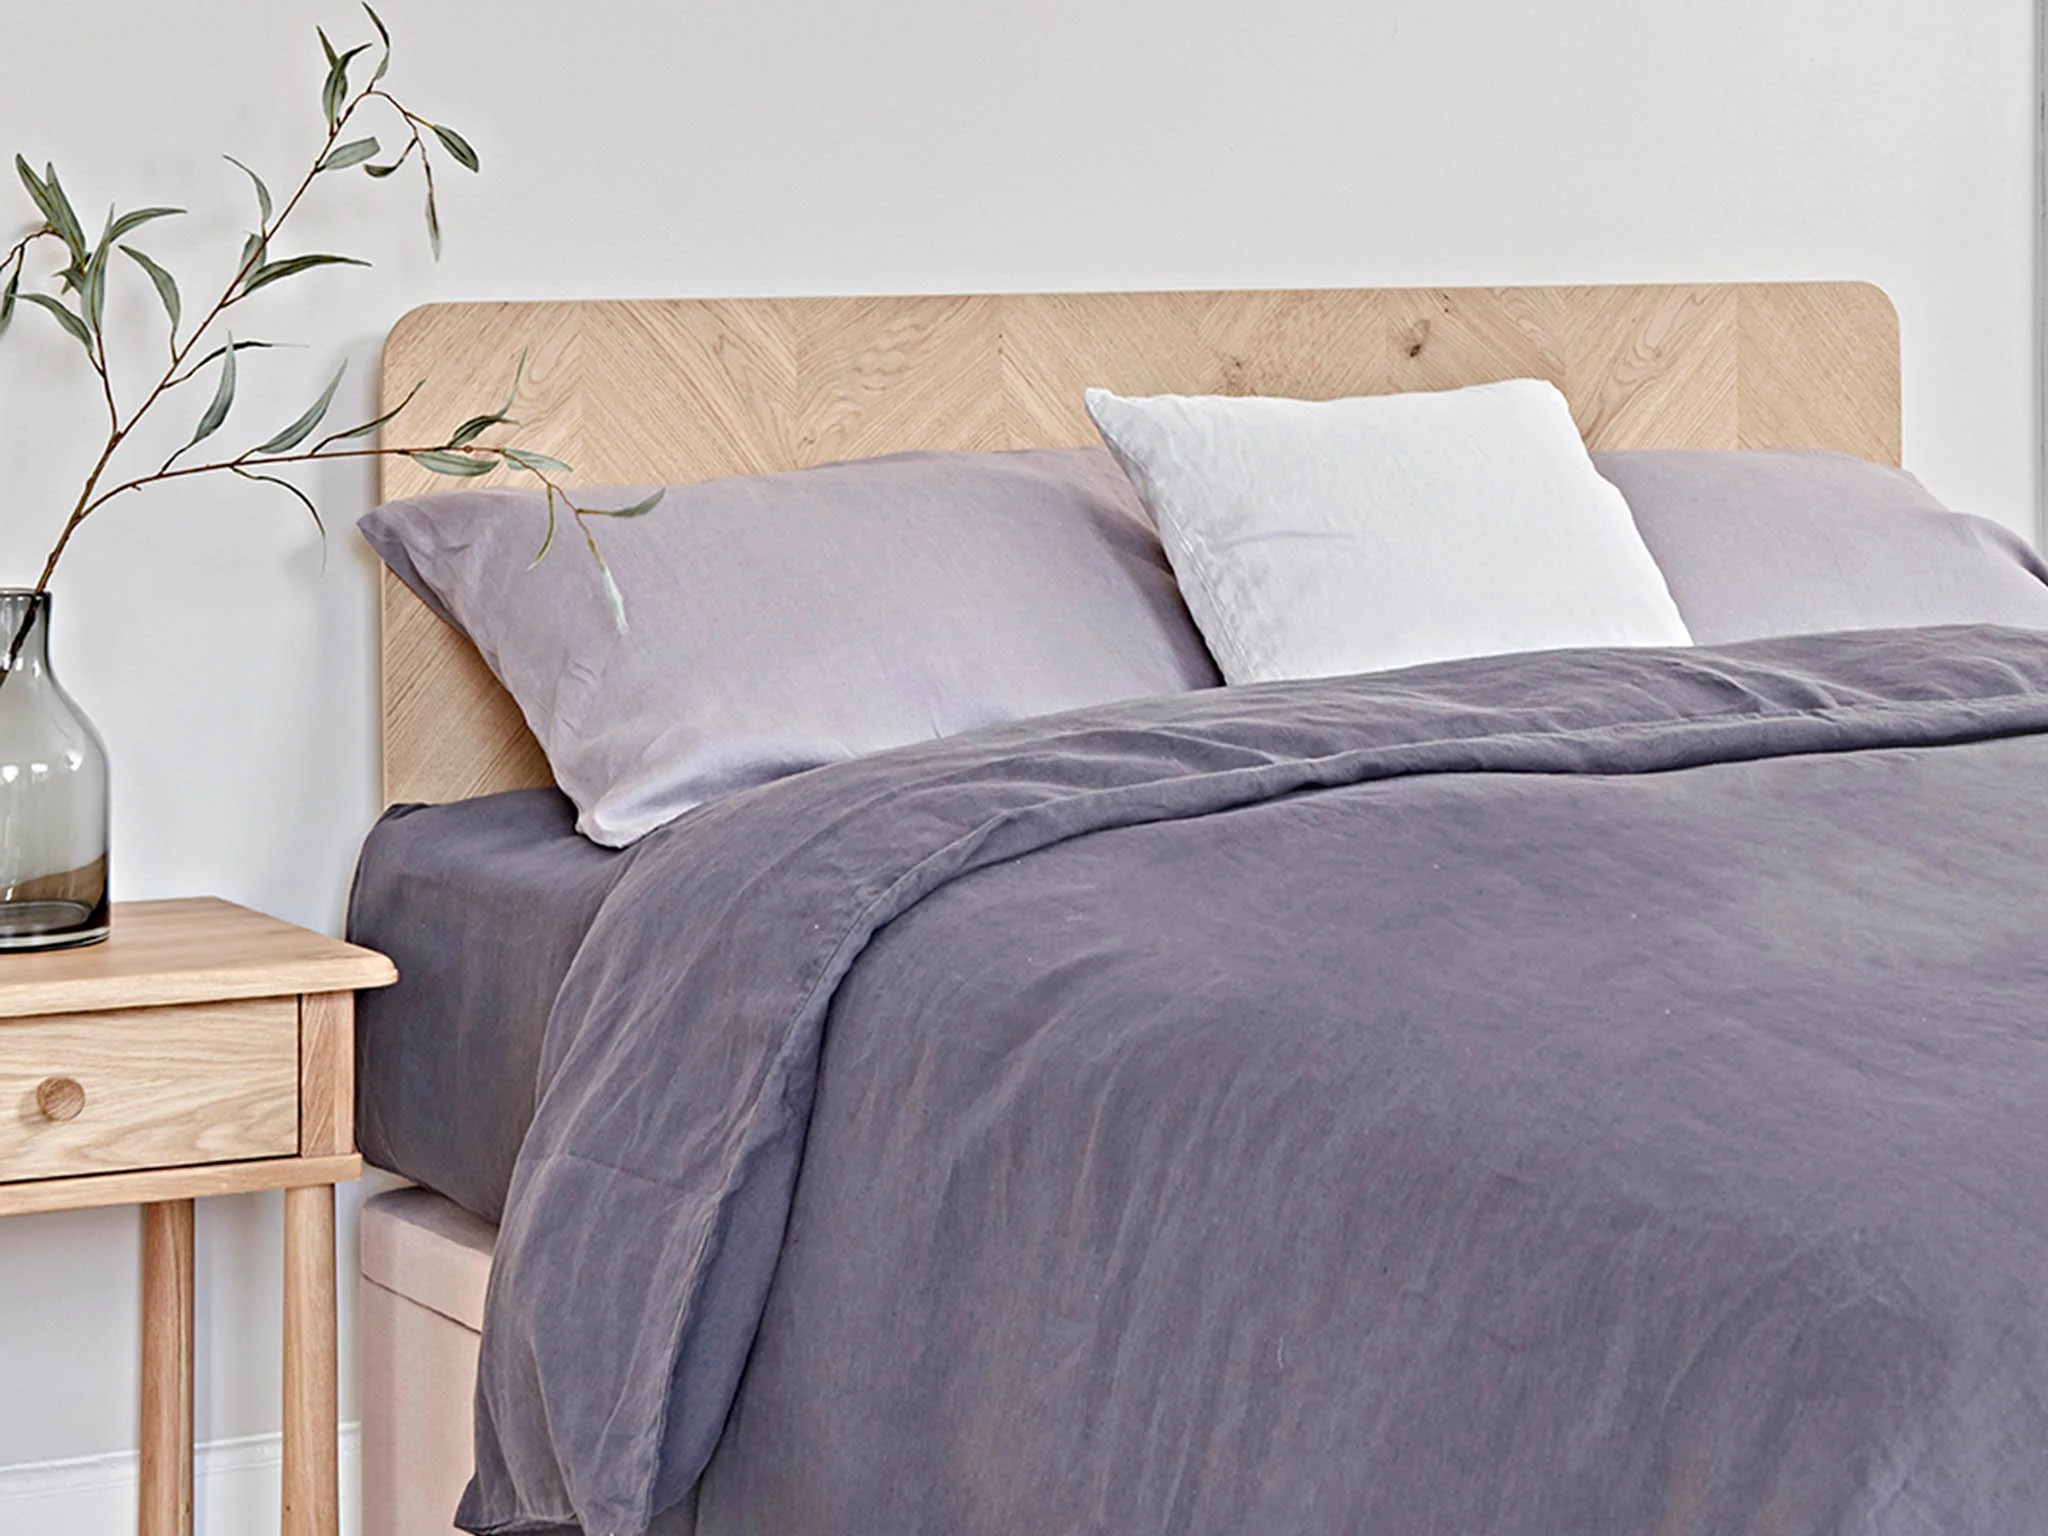 Best Headboard To Transform You Bedroom With